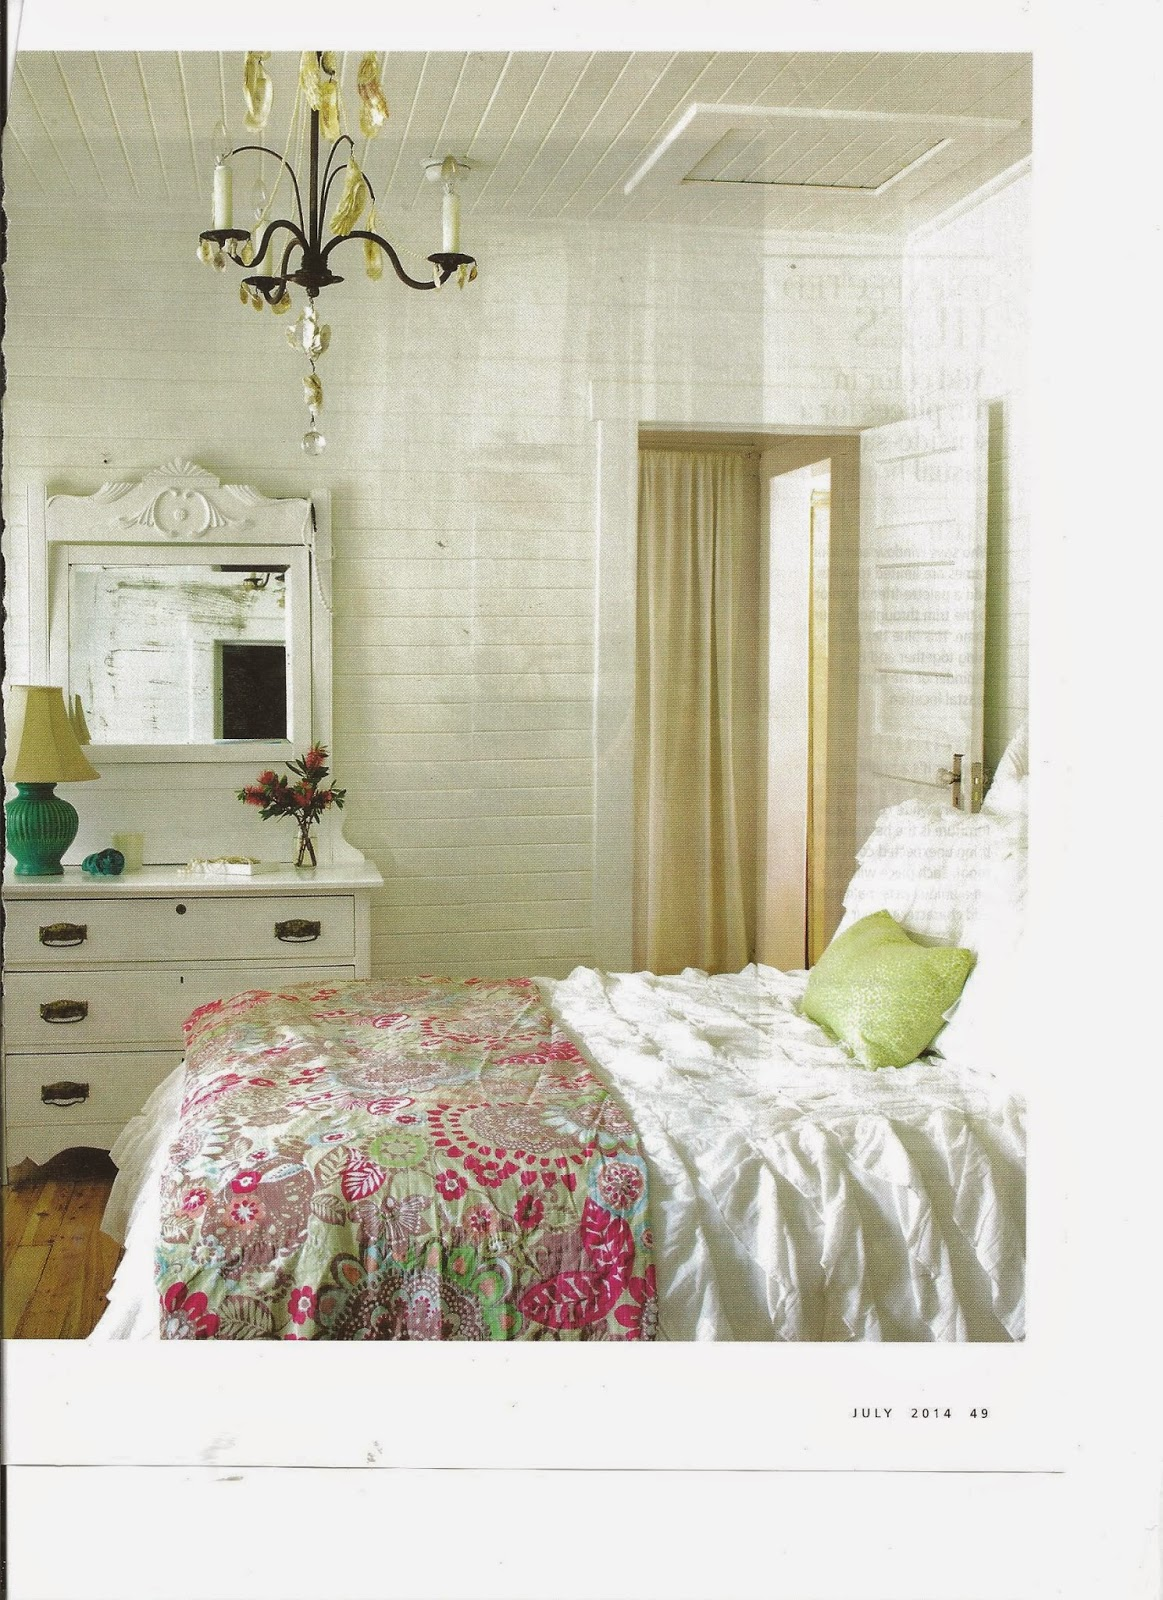 Jane Coslick Cottages My Favorite Bedroom And More: The Magazine Story